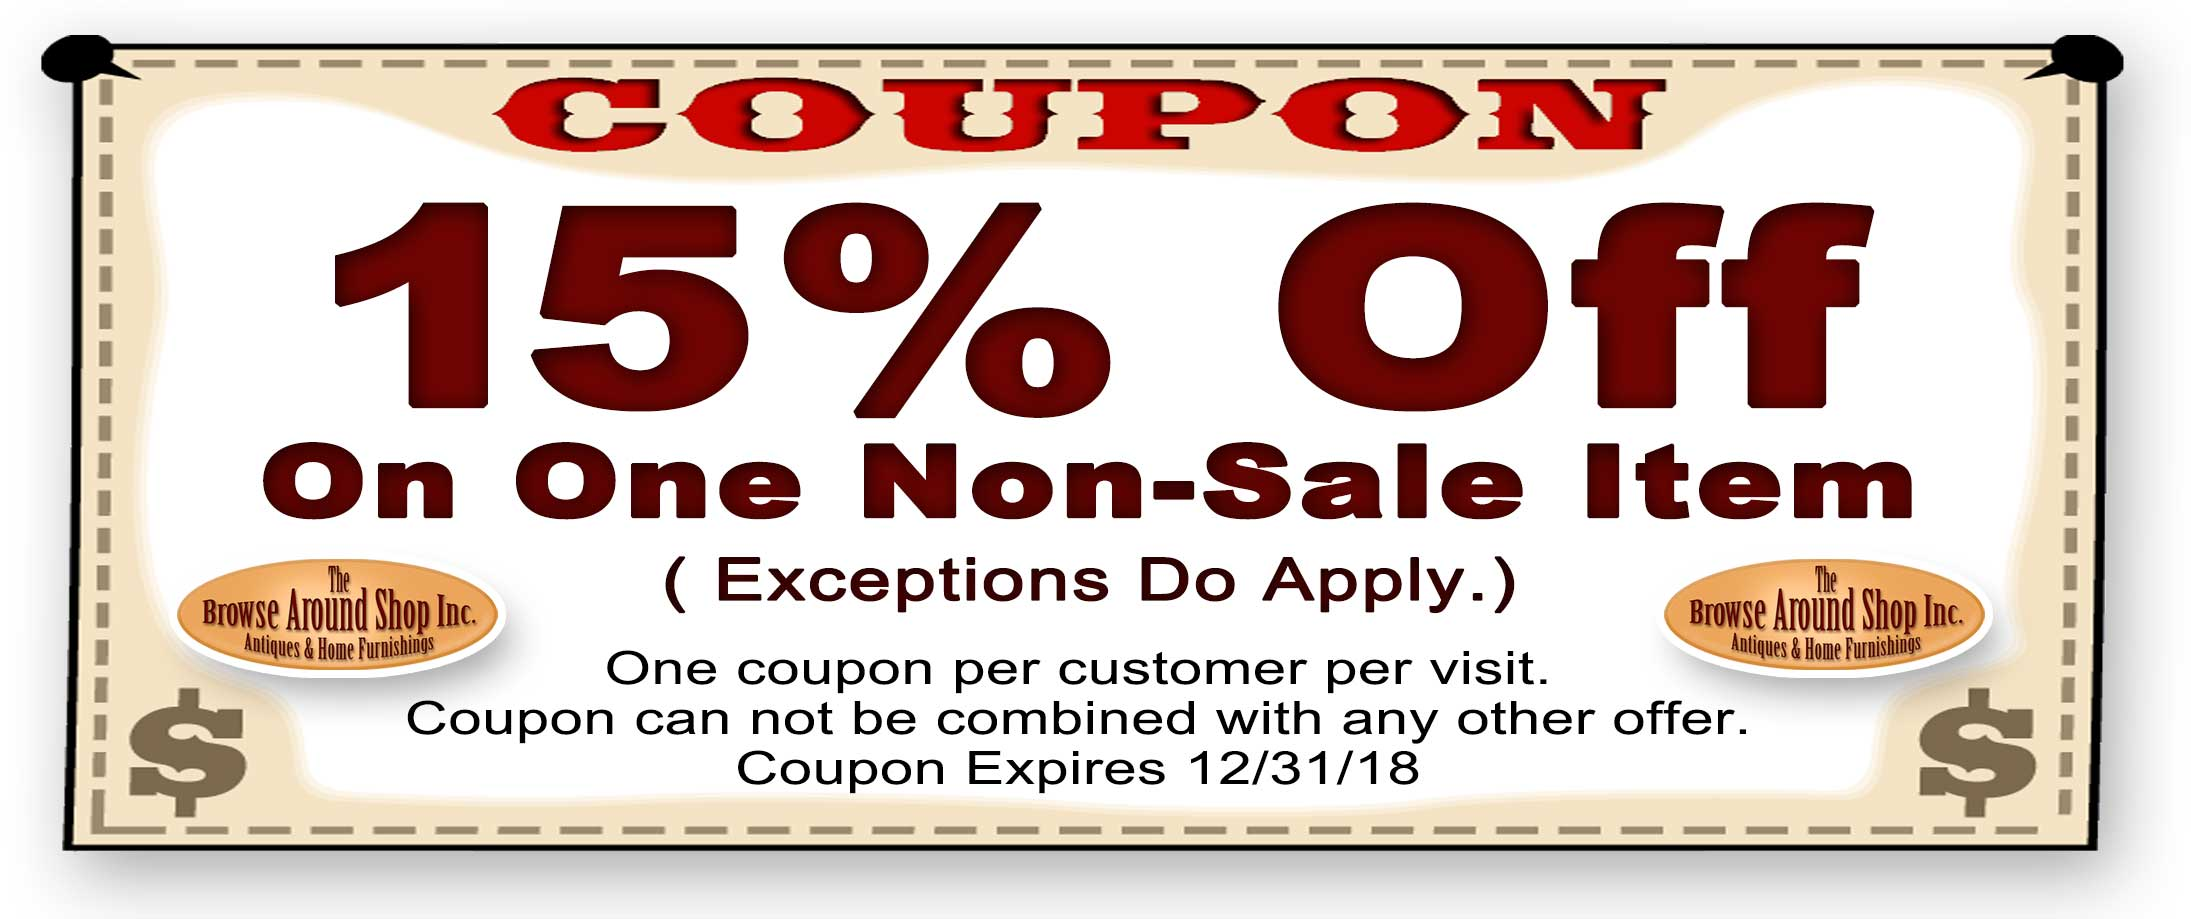 Browse Around Antique Home Furnishings Shop Online Catalog